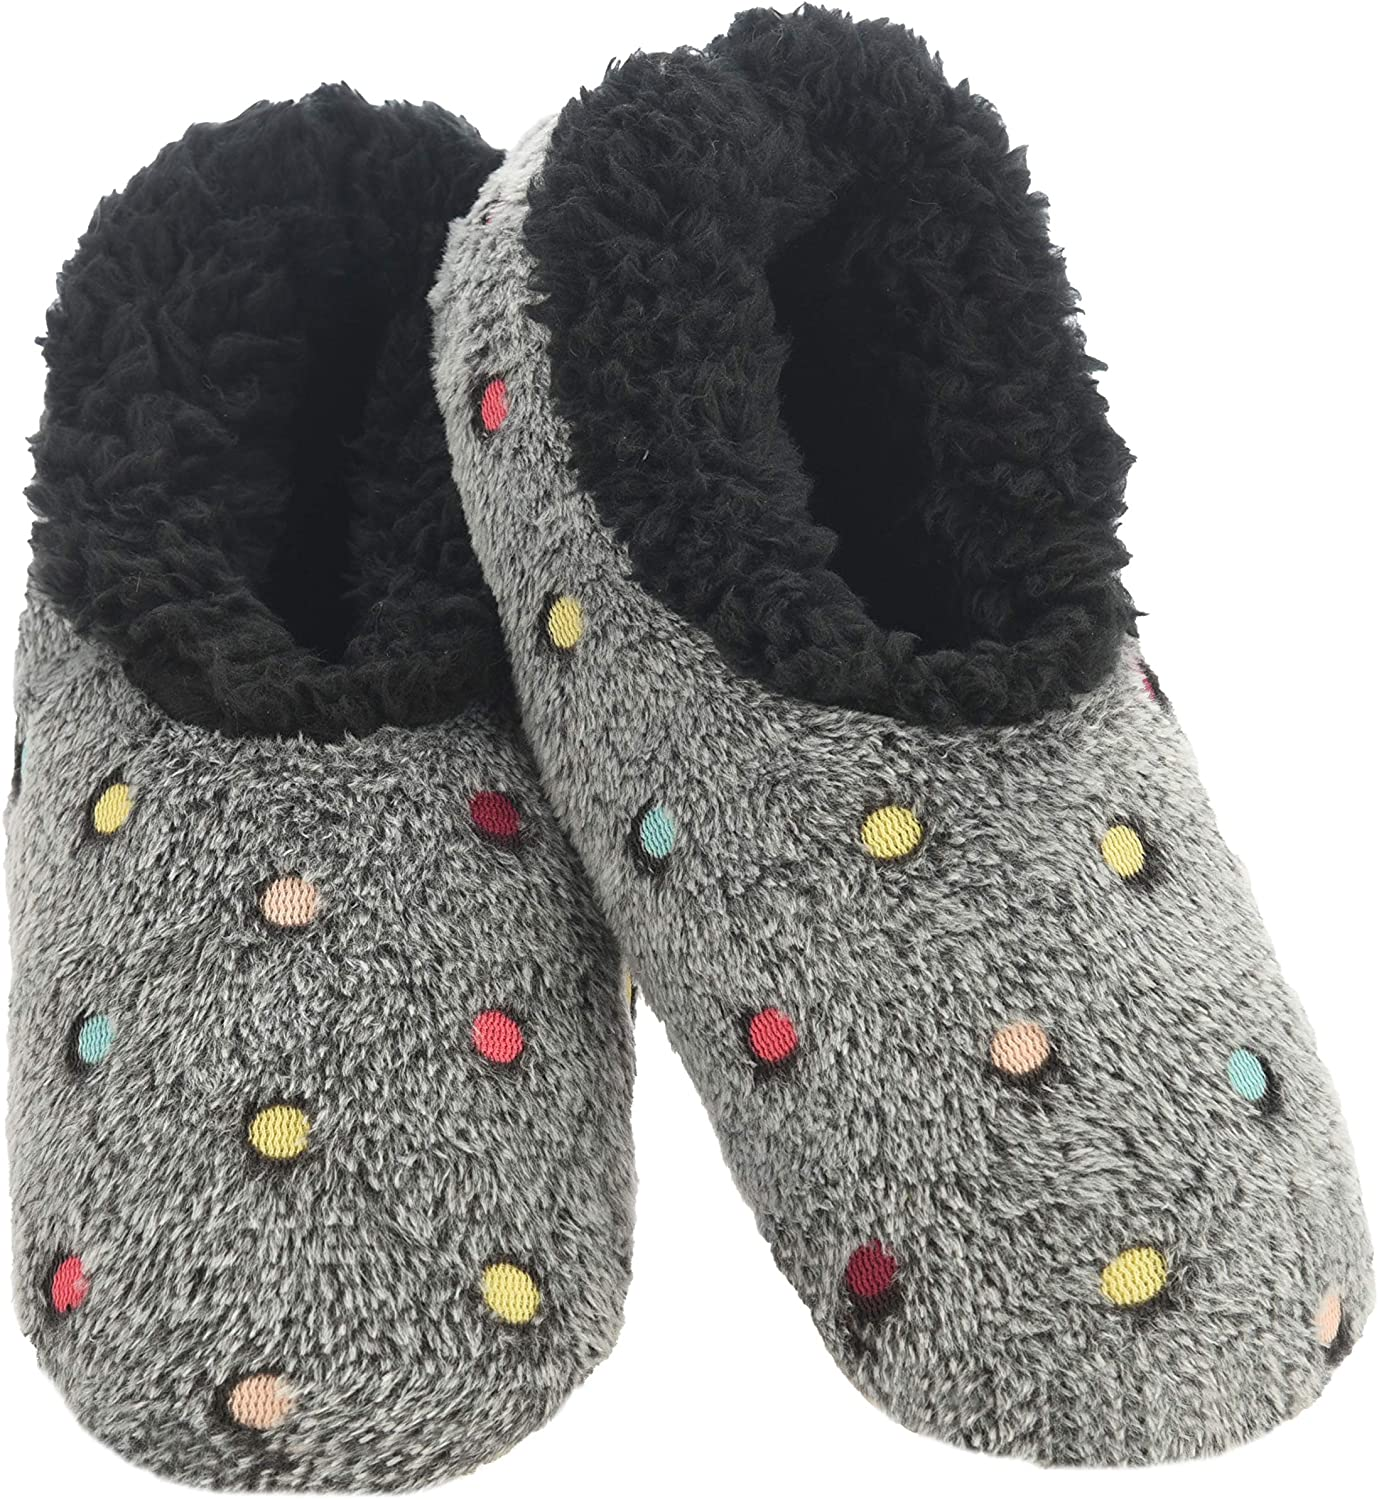 Snoozies Slippers for Women | Lotsa Dots Colorful Cozy Sherpa Slipper Socks | Womens House Slippers | Cozy Slippers for Women | Colorful Womens Fuzzy Slippers